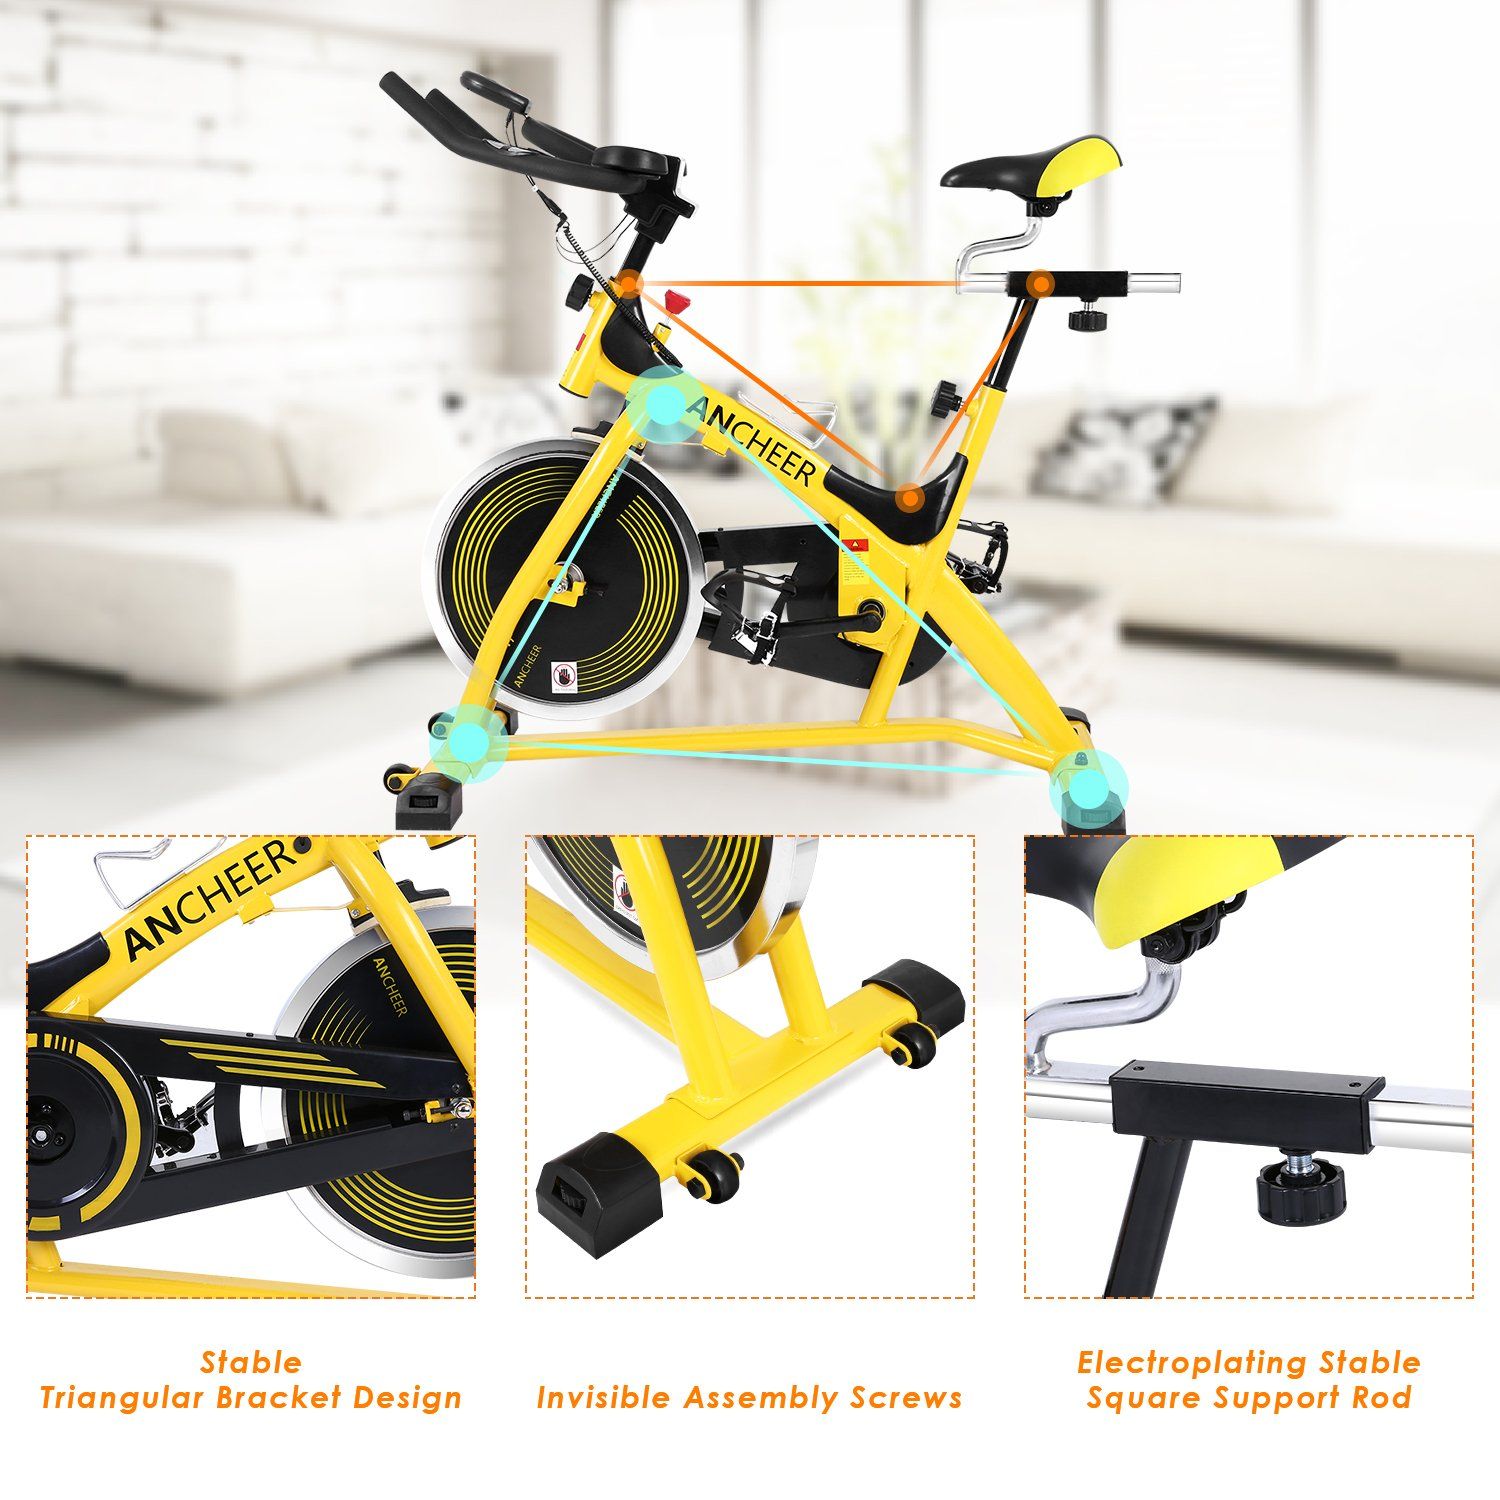 ANCHEER Stationary Bike, 40 LBS Flywheel Belt Drive Indoor Cycling Exercise Bike with Pulse, Elbow Tray (Model: ANCHEER-A5001) (Yellow) by ANCHEER (Image #9)